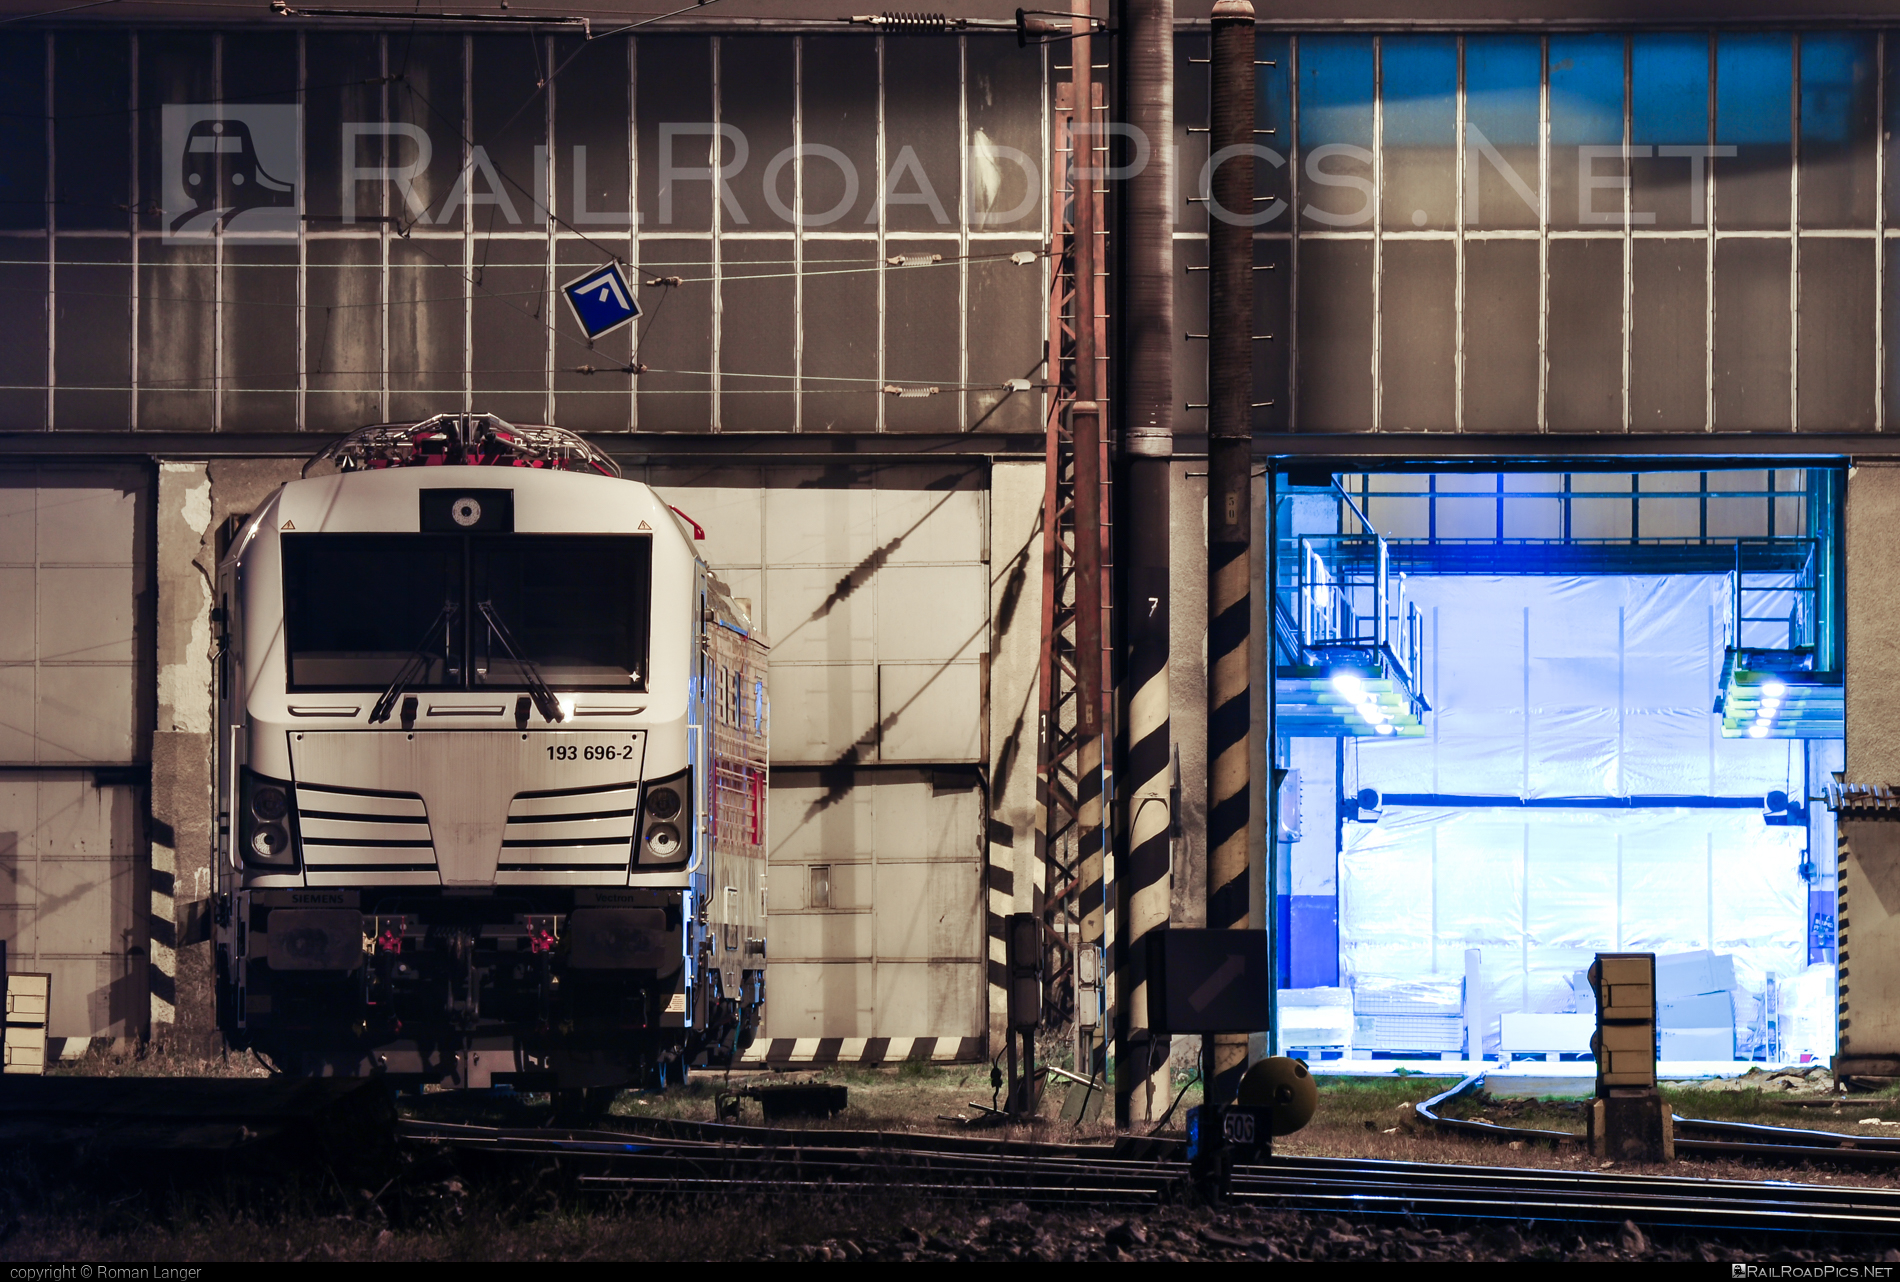 Siemens Vectron MS - 193 696-2 operated by Unknown #RollingStockLease #RollingStockLeaseSro #raill #siemens #siemensvectron #siemensvectronms #vectron #vectronms